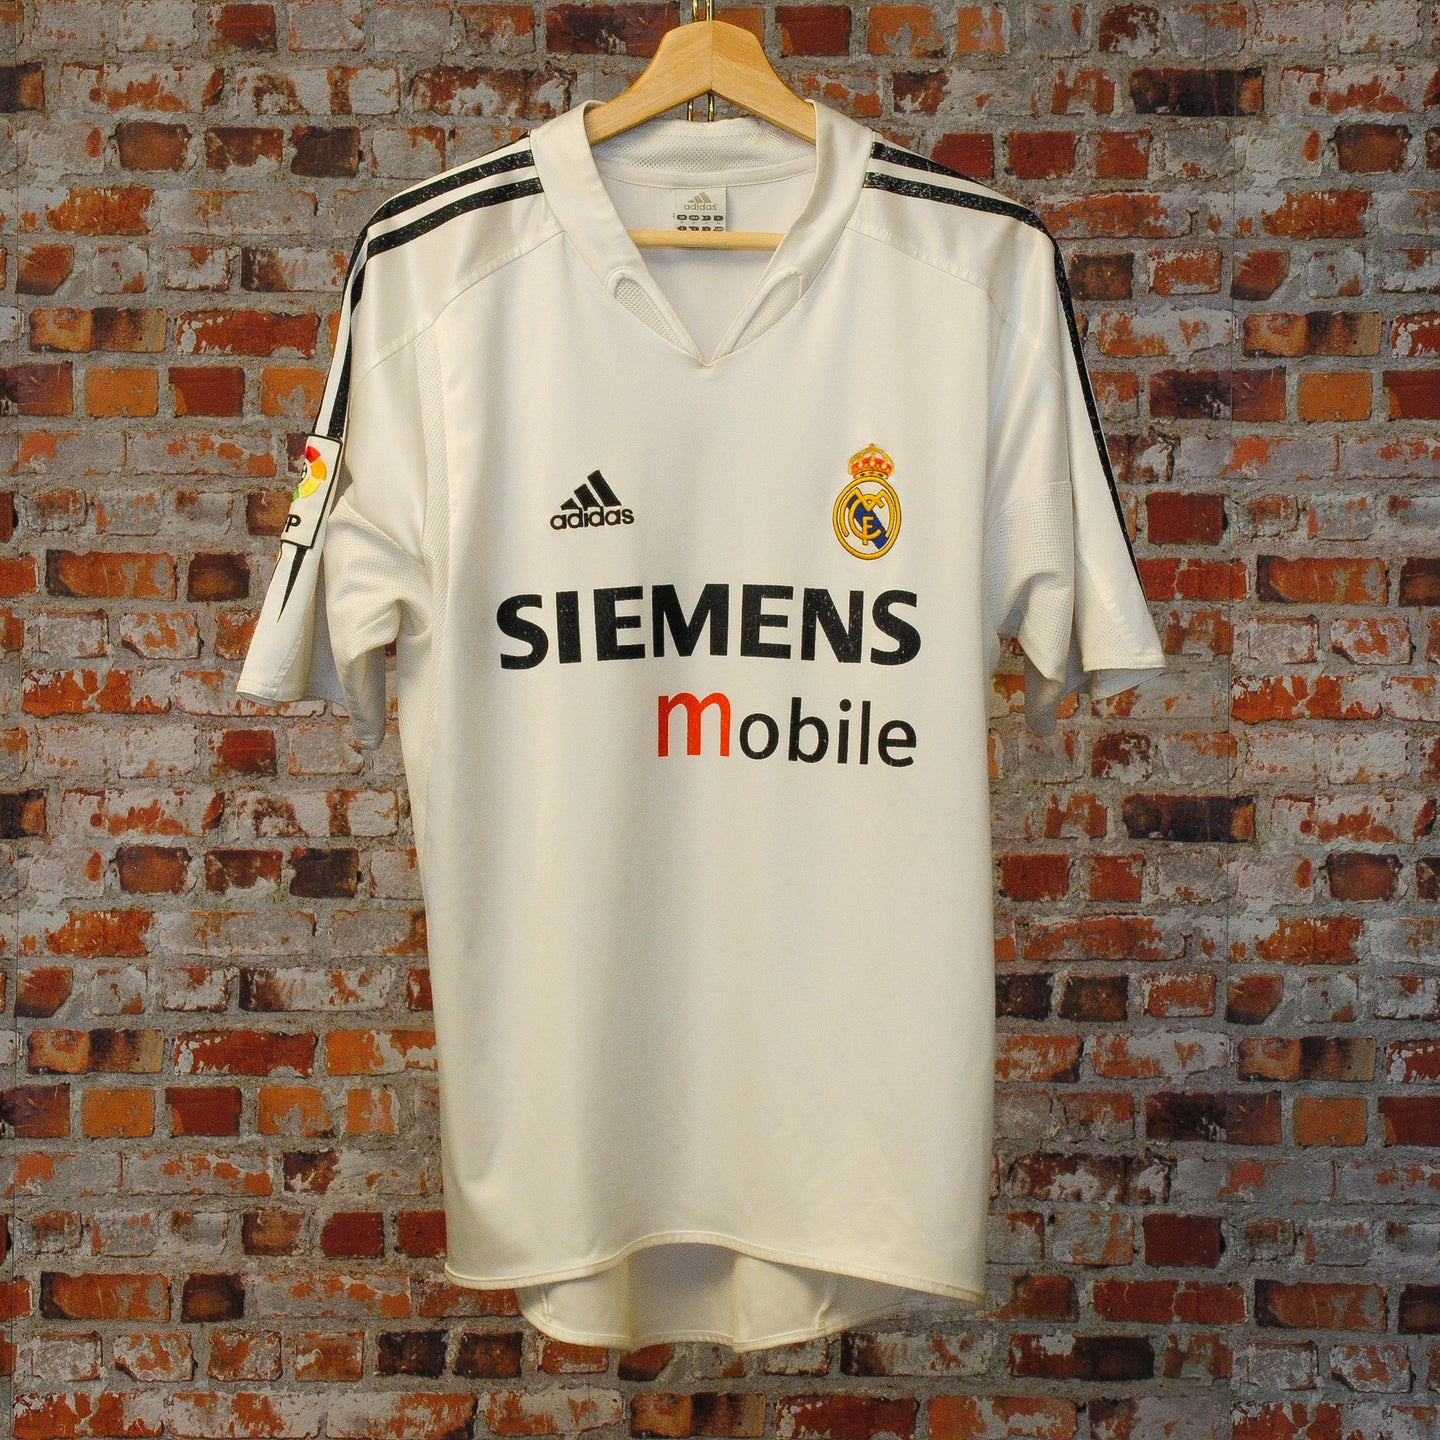 fresh-vintage-soccer-shirt-with-siemels-mobile-and-adidas-logo-front